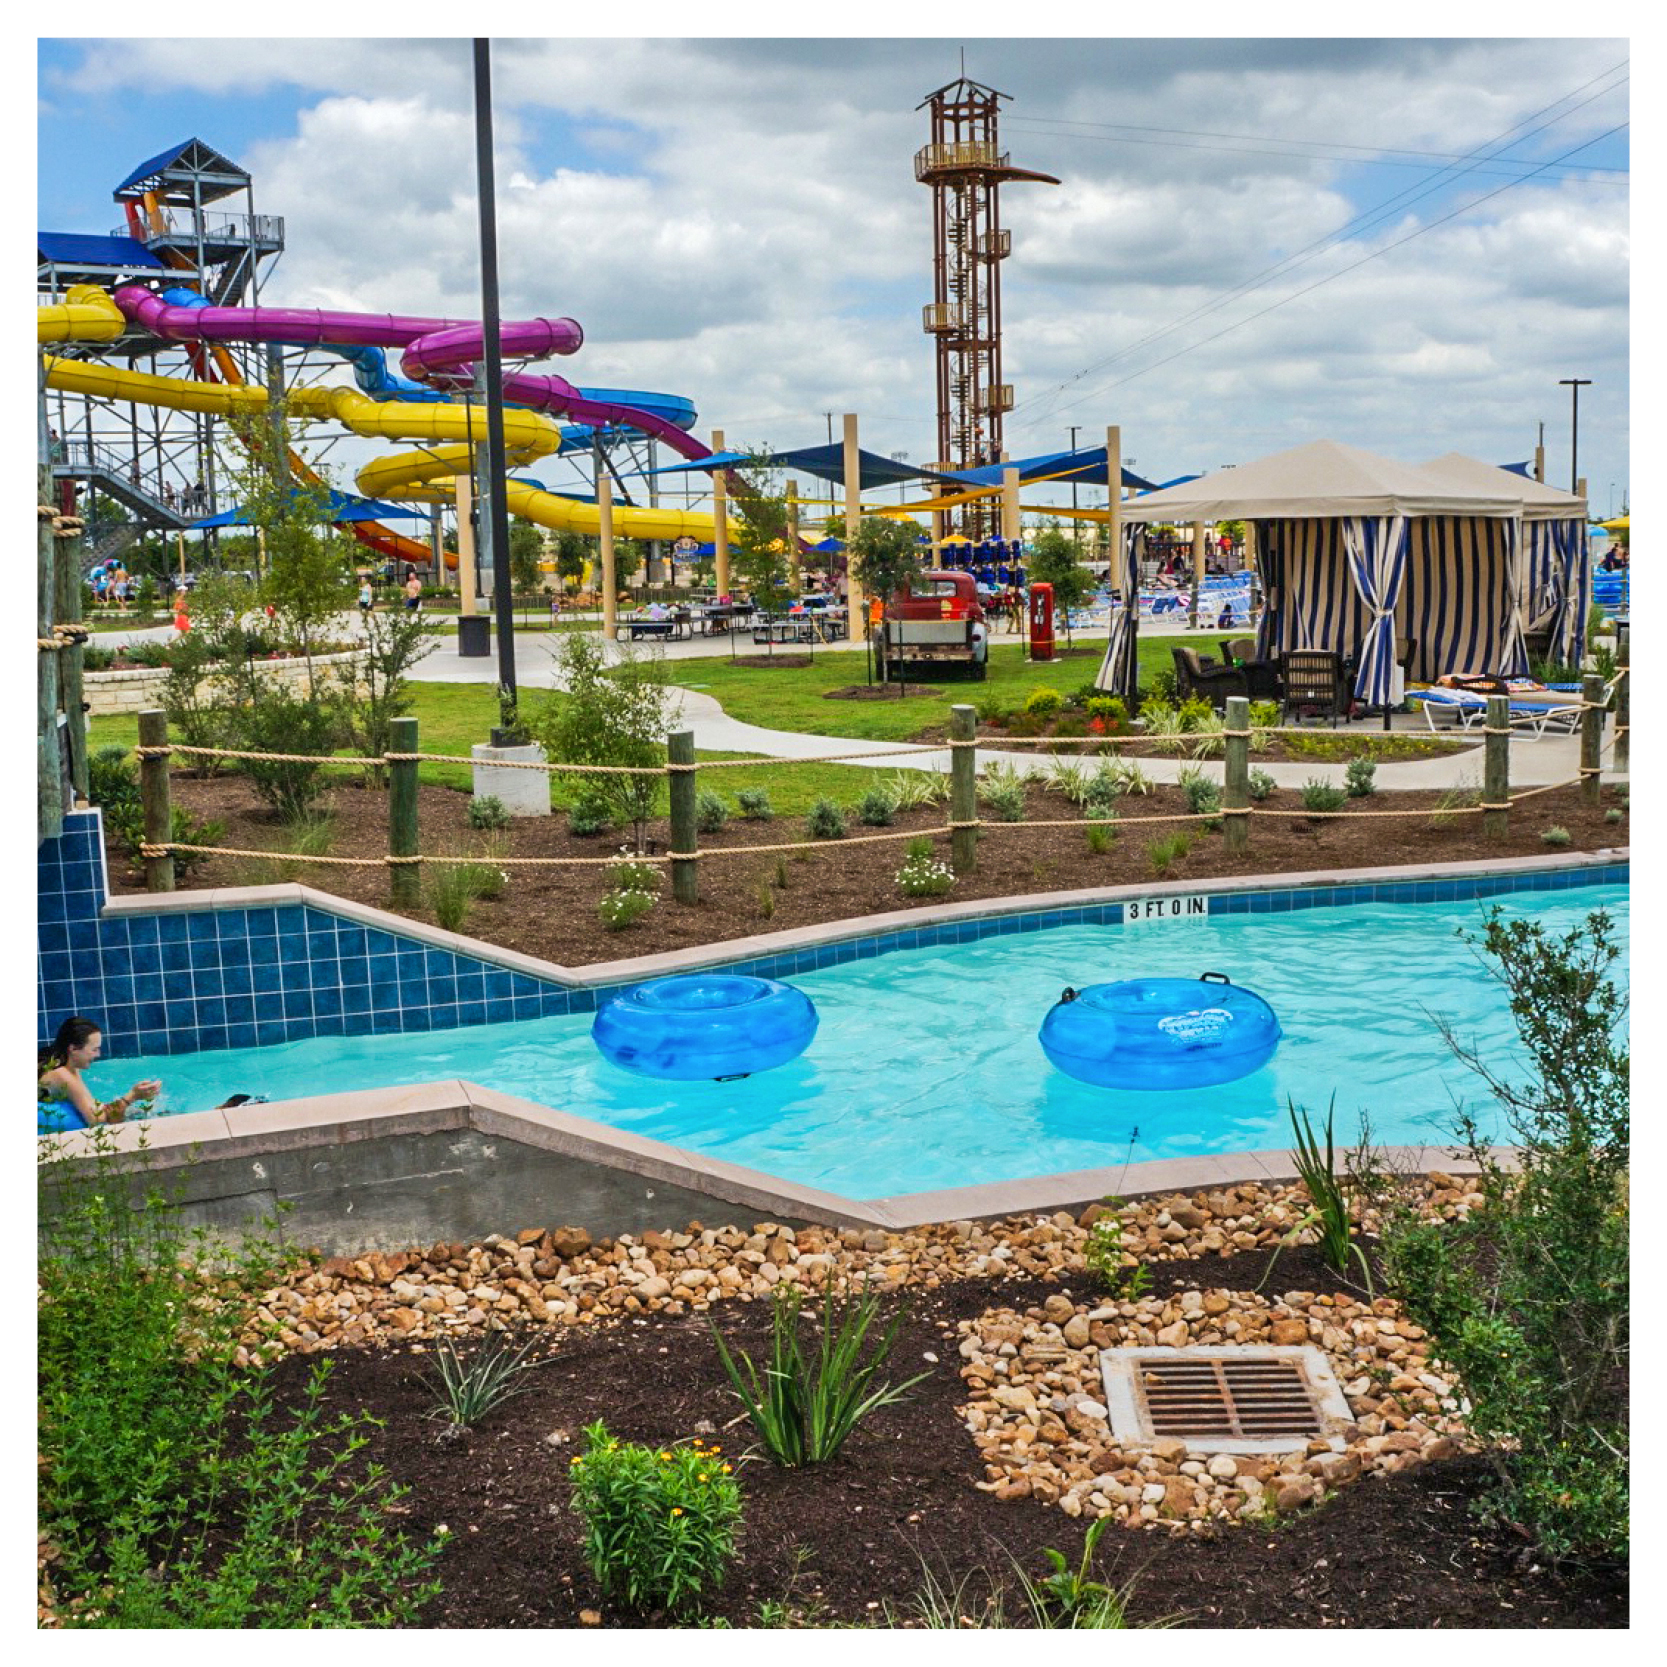 Texas Typhoon Water Park